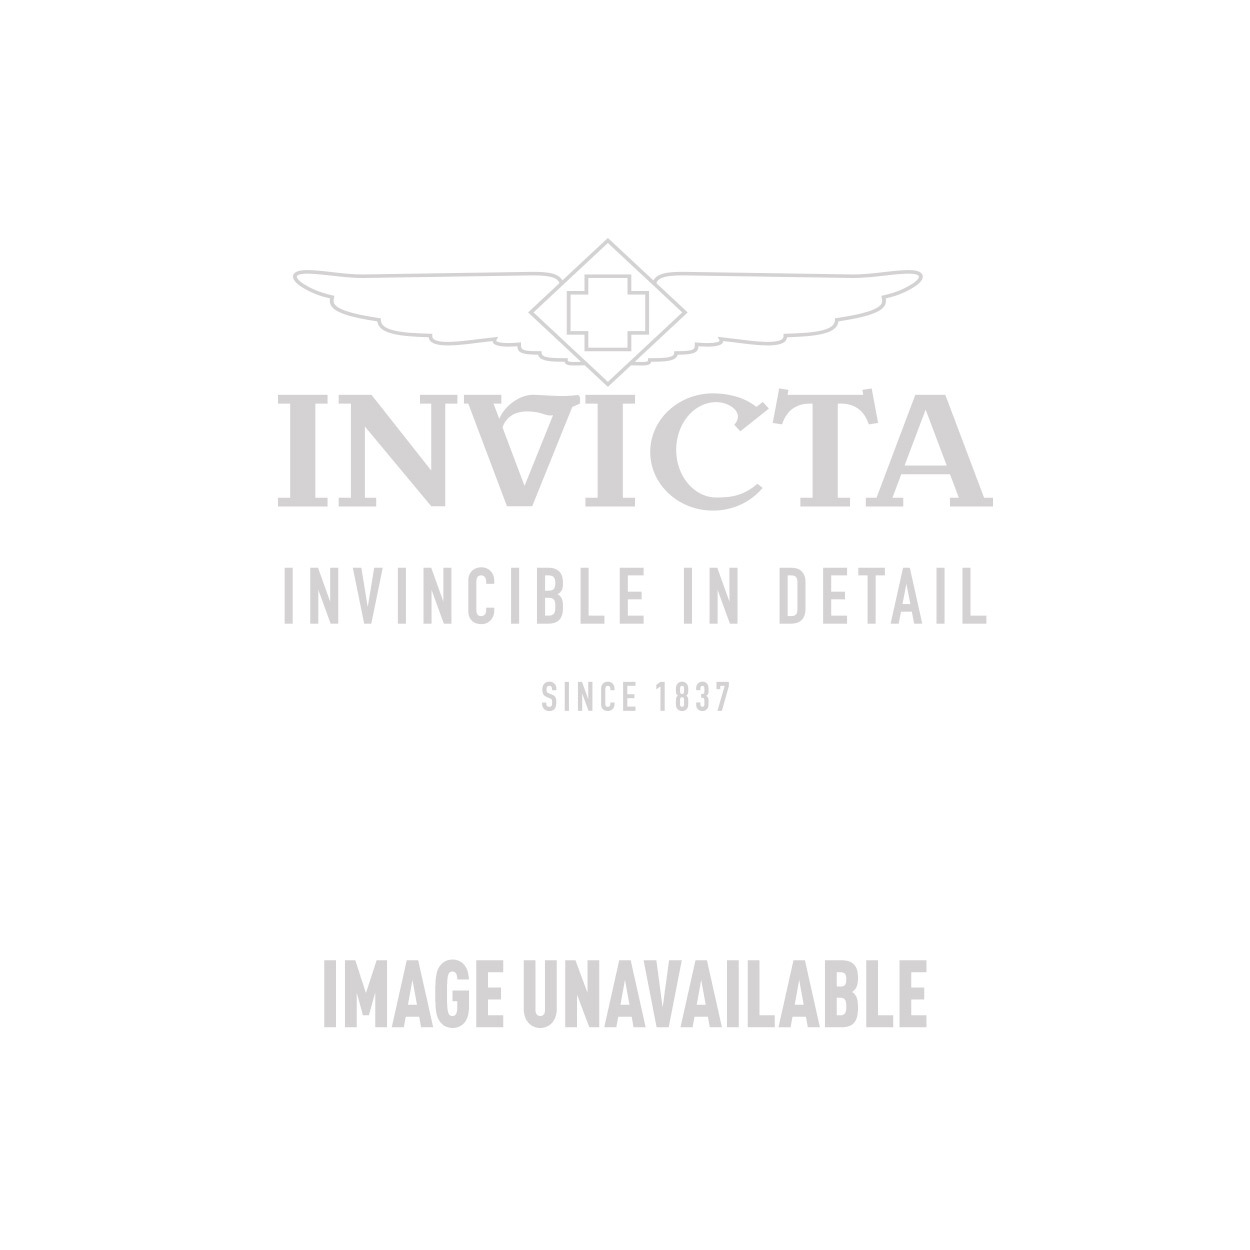 Invicta Speedway Swiss Made Quartz Watch - Stainless Steel case Stainless Steel band - Model 19496